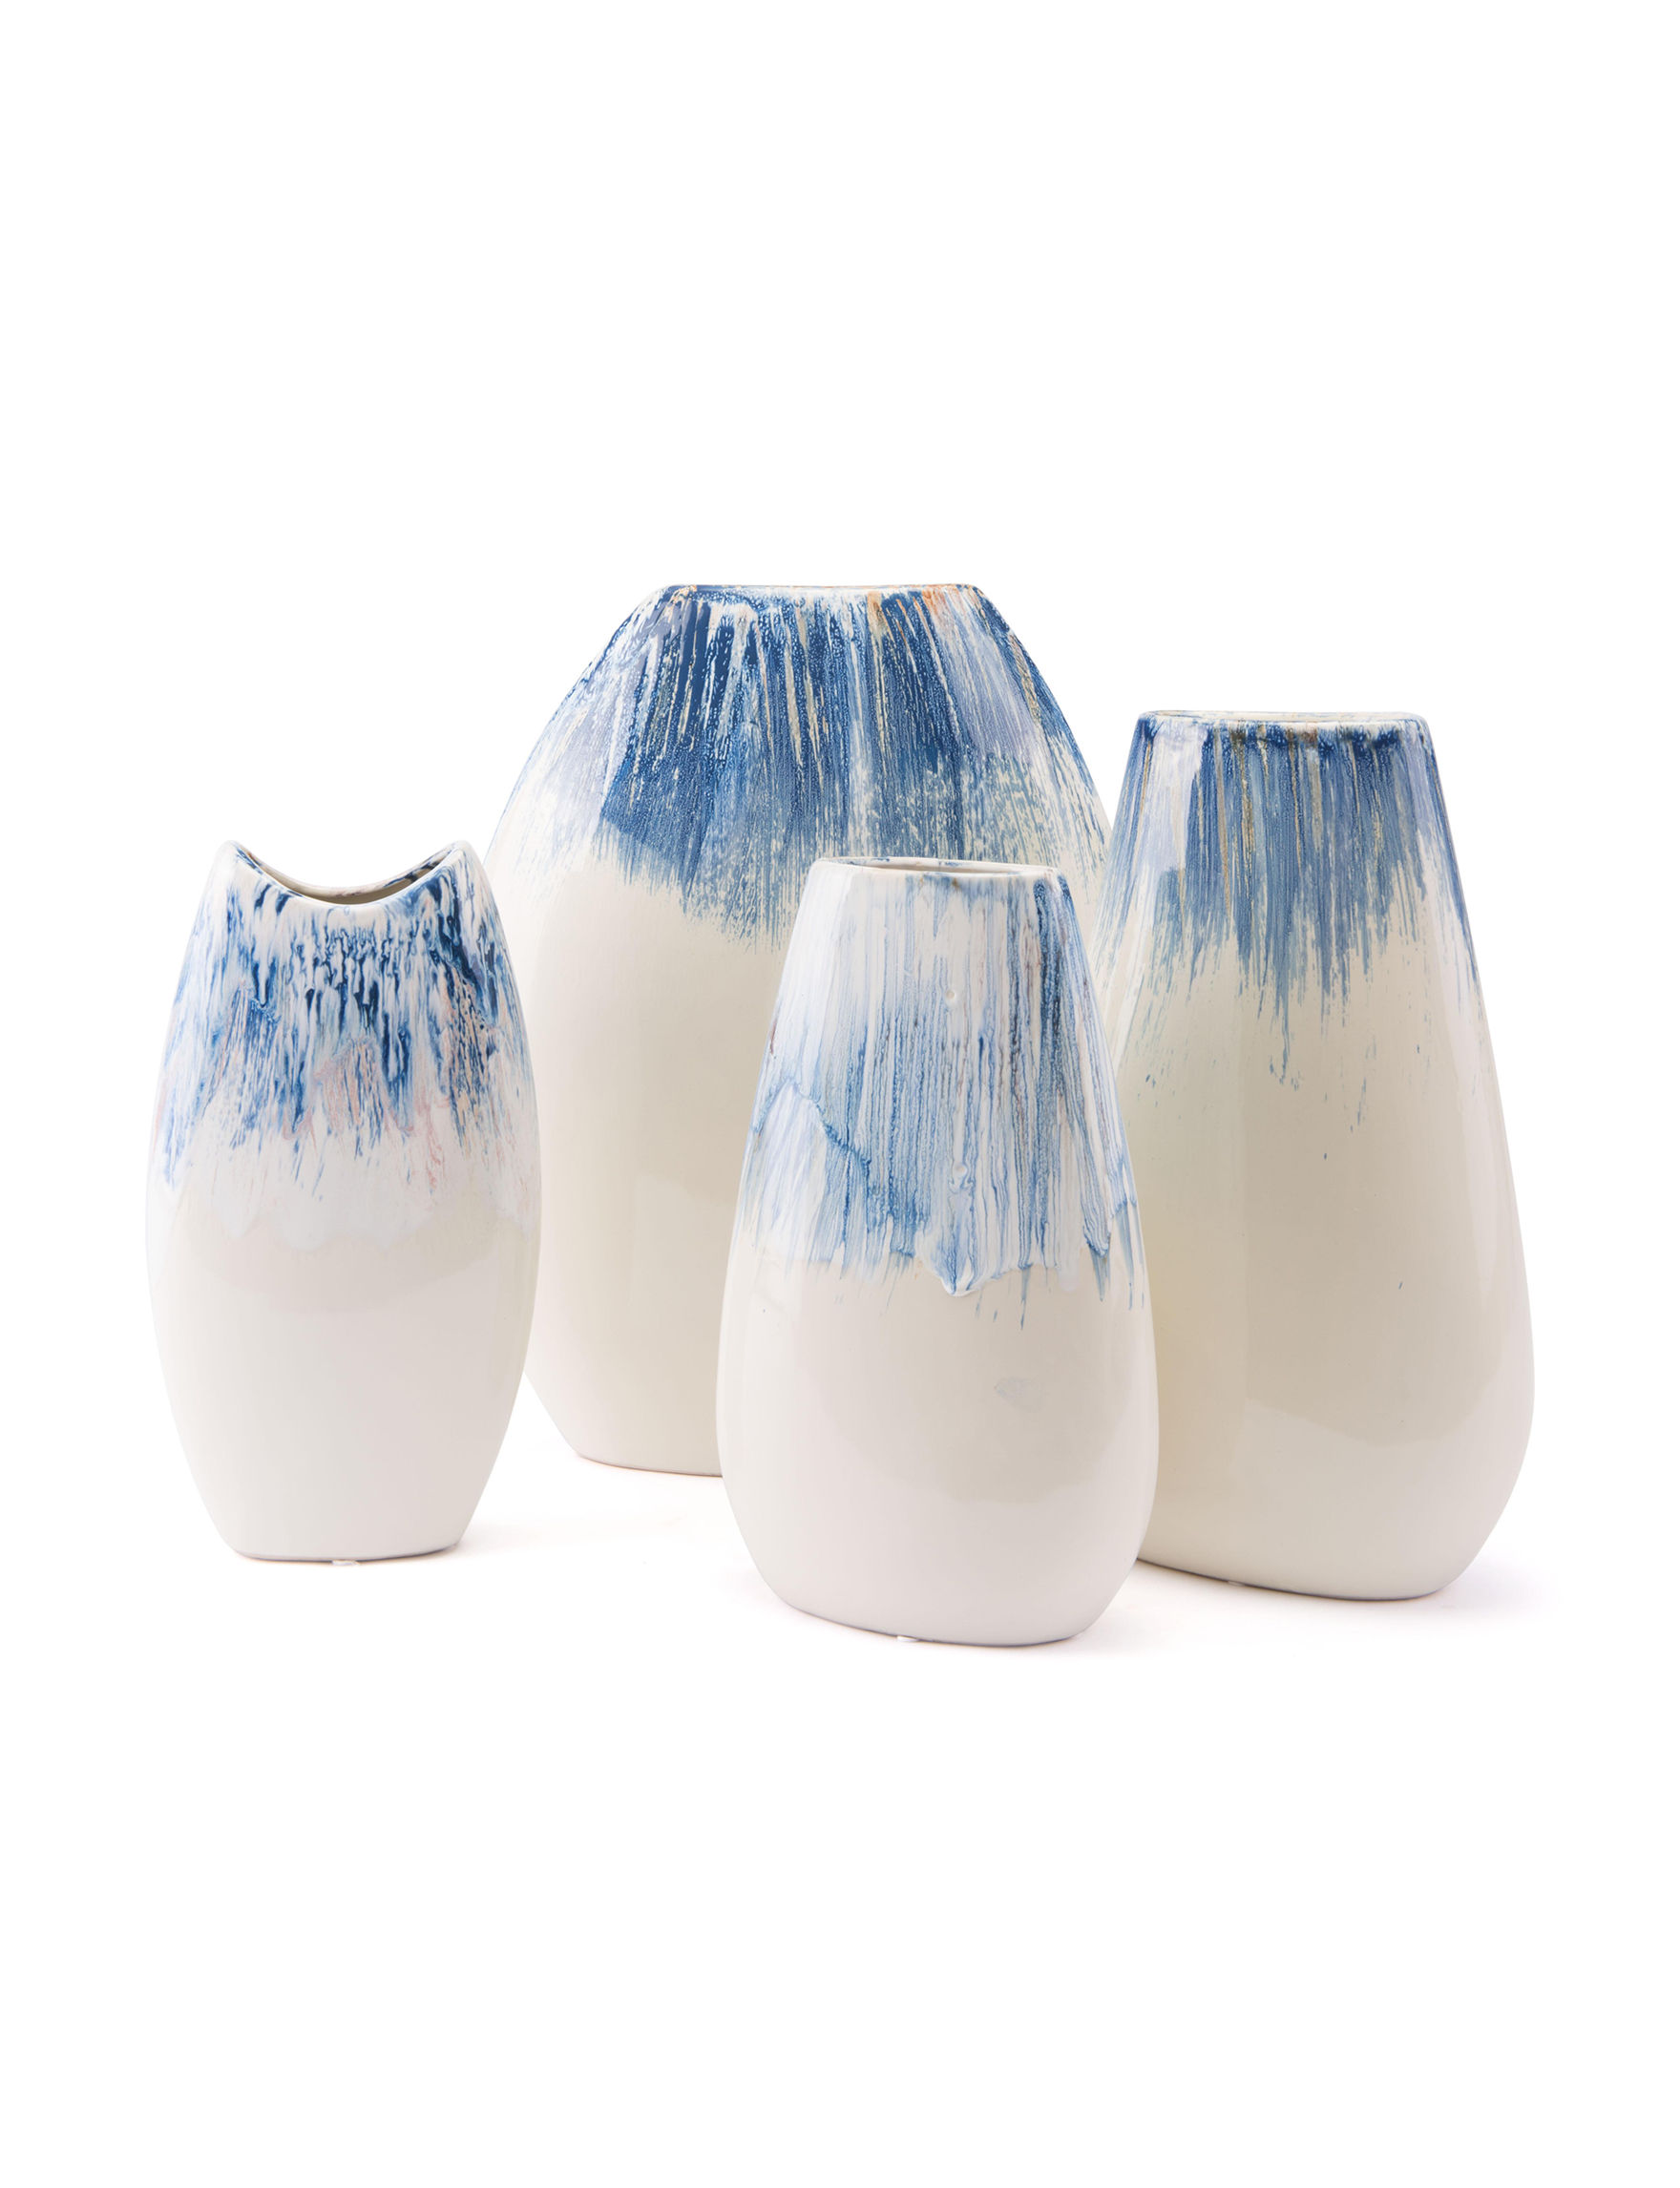 Zuo Modern  Vases & Decorative Bowls Home Accents